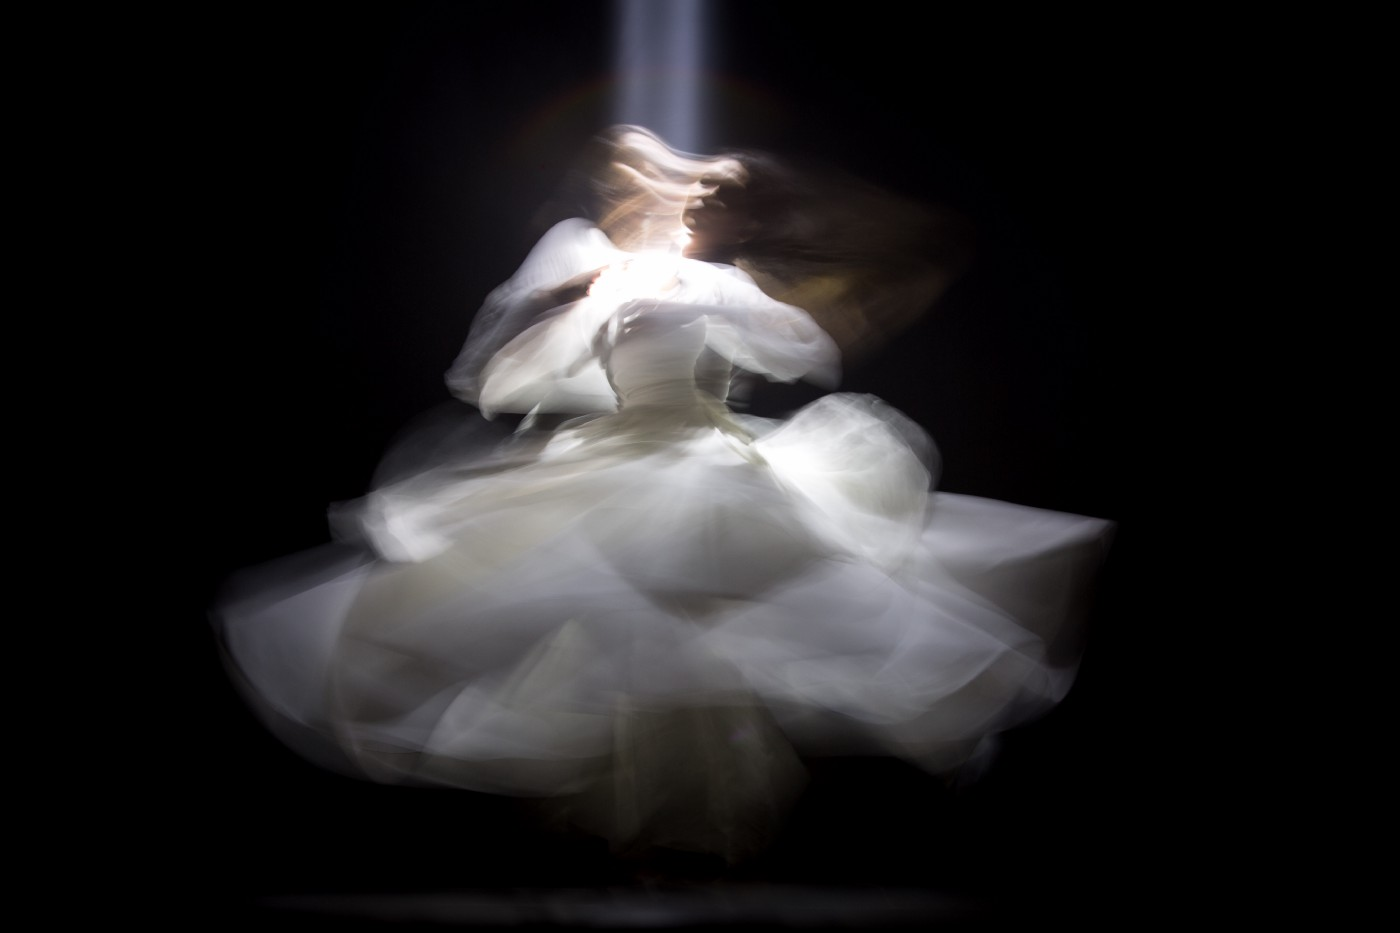 Image is that of a female dancer in a white full skirted gown and she is twirling around so that the image of the skirt is not sharp. From above there is a light shining down on the head of the dancer.